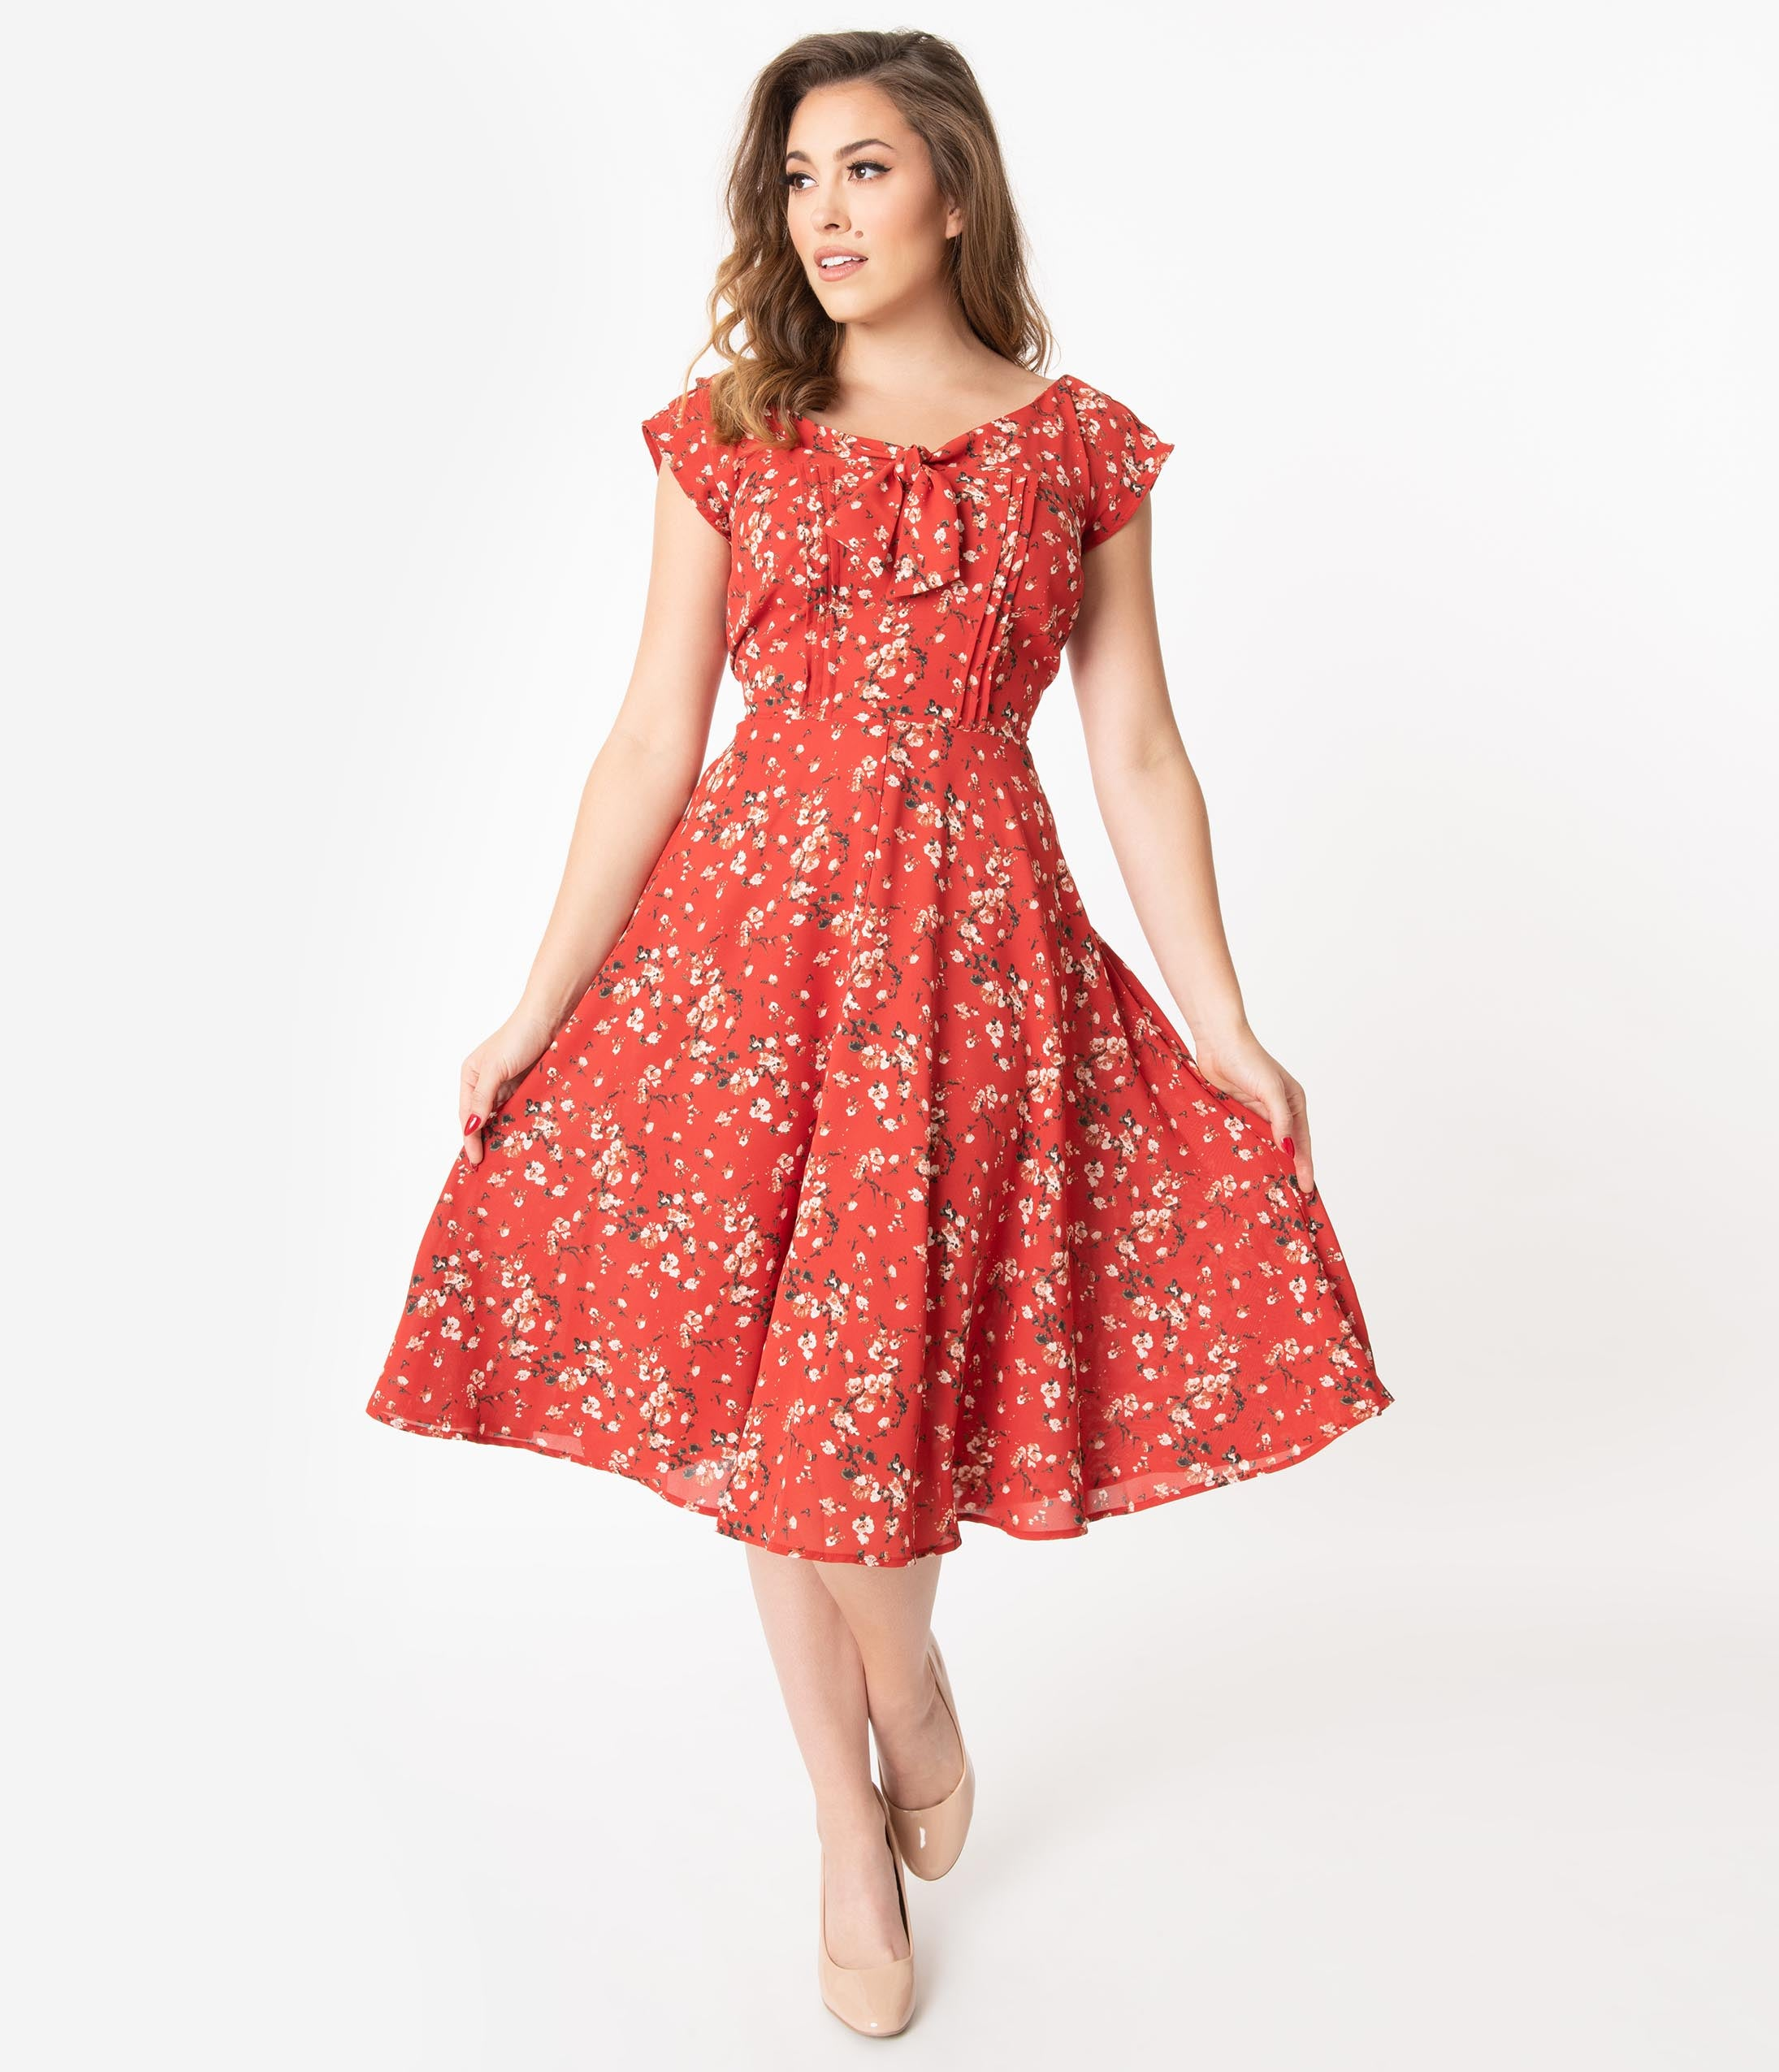 1940s Dresses | 40s Dress, Swing Dress Unique Vintage 1940S Style Red Floral Print Havilland Dress $88.00 AT vintagedancer.com